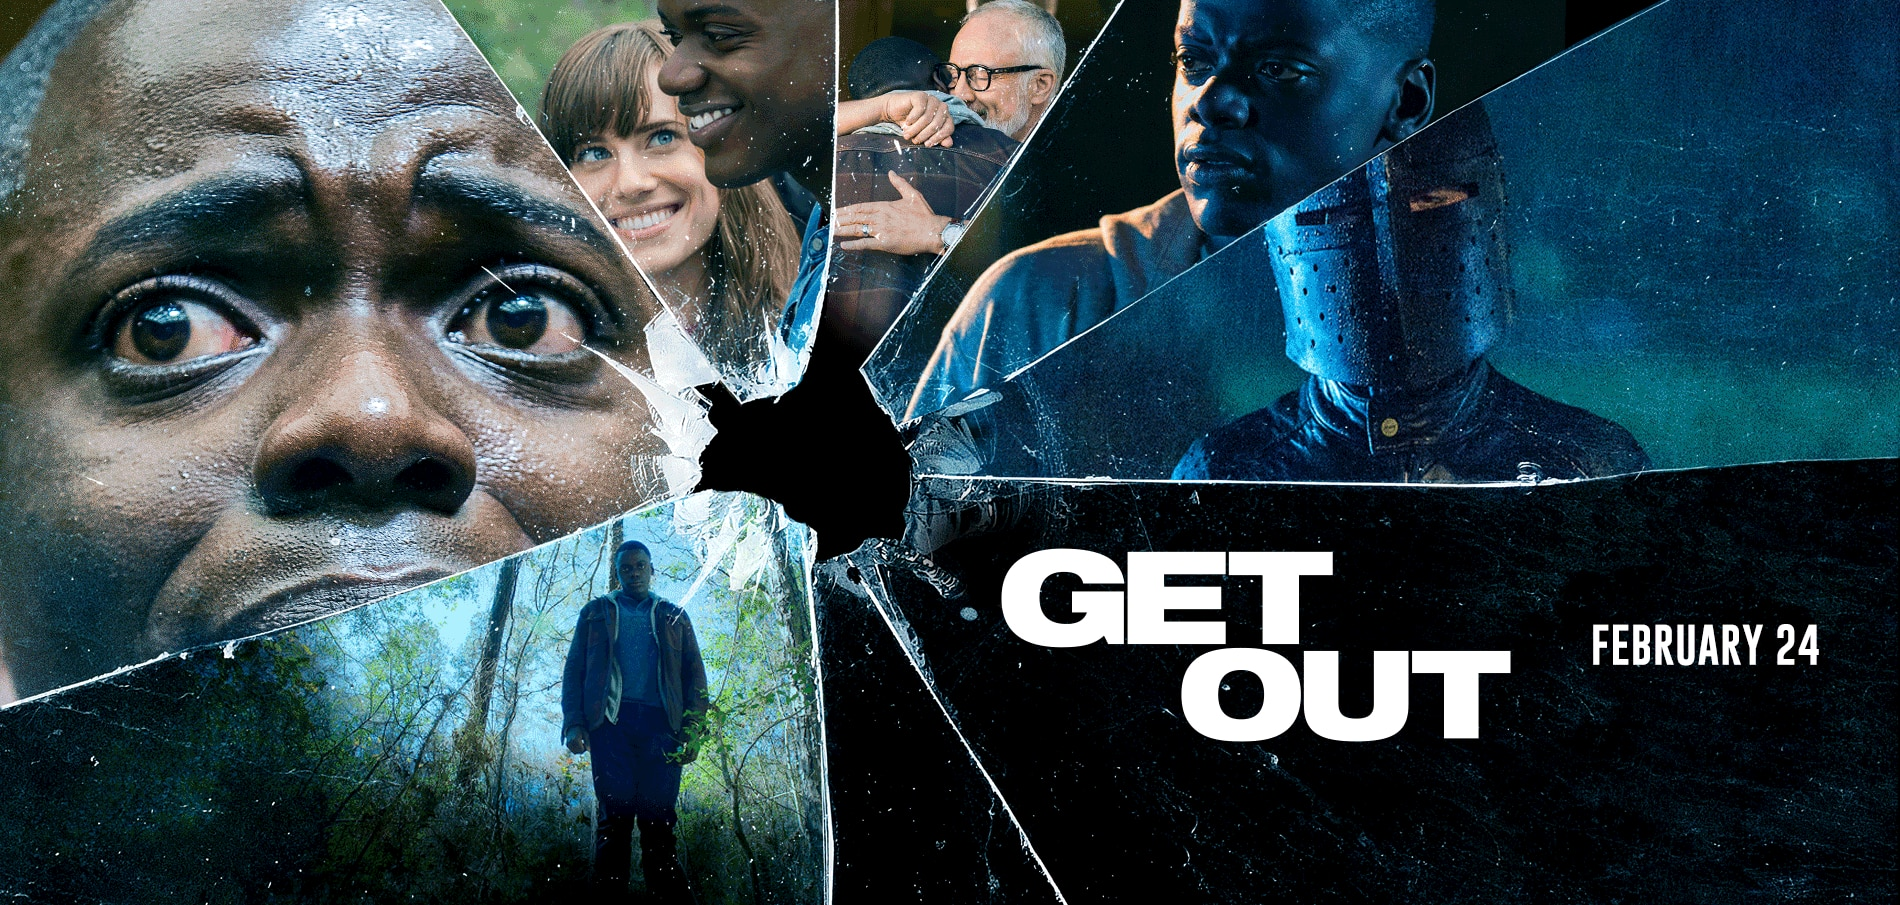 get out mainstage dated 58828bab73e20 1 - Win a Copy of Get Out on Blu-ray!